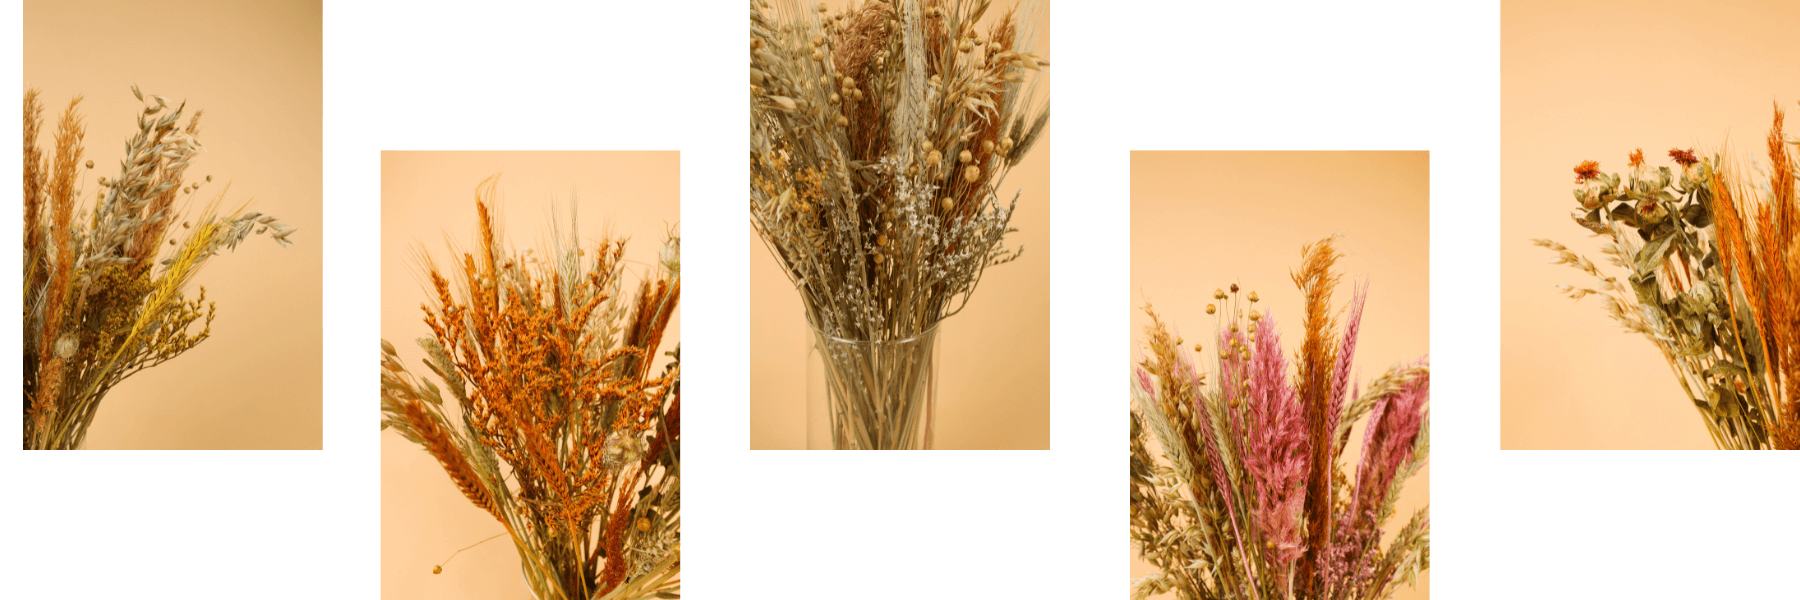 DIY Dried bouquets by Tifiori picture of dried flowers